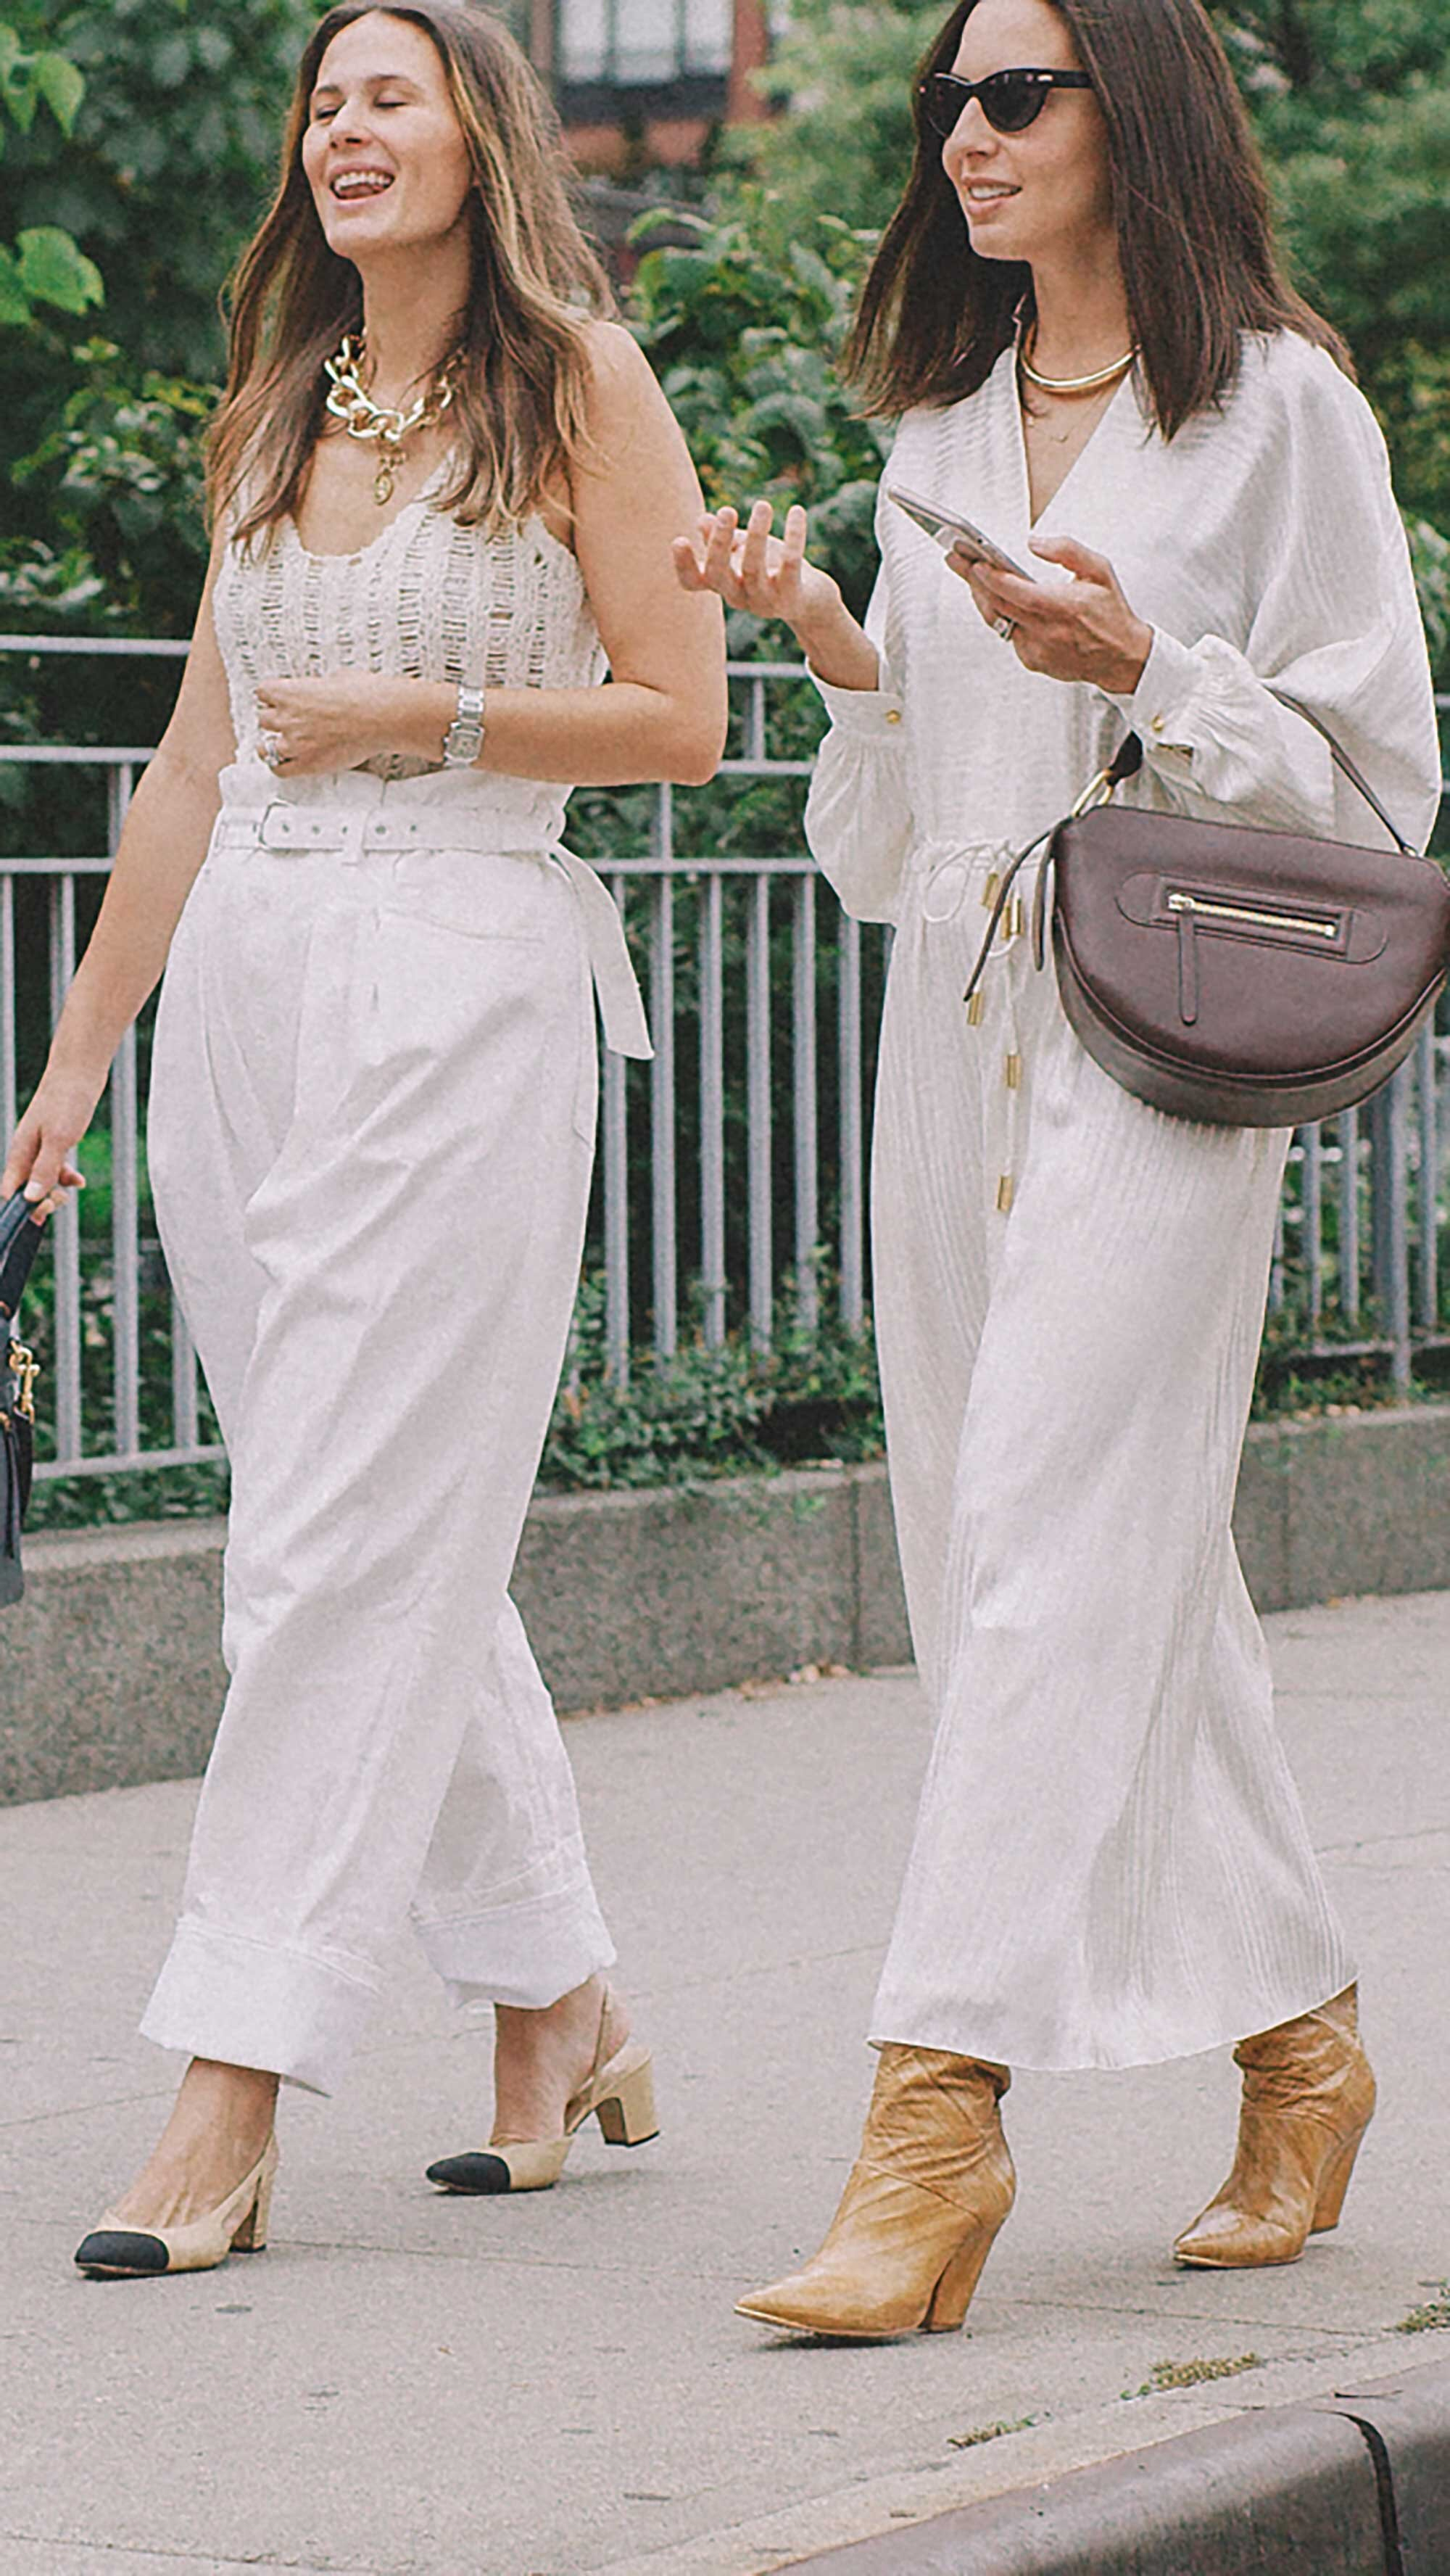 Best outfits of New York Fashion Week street style -24.jpg